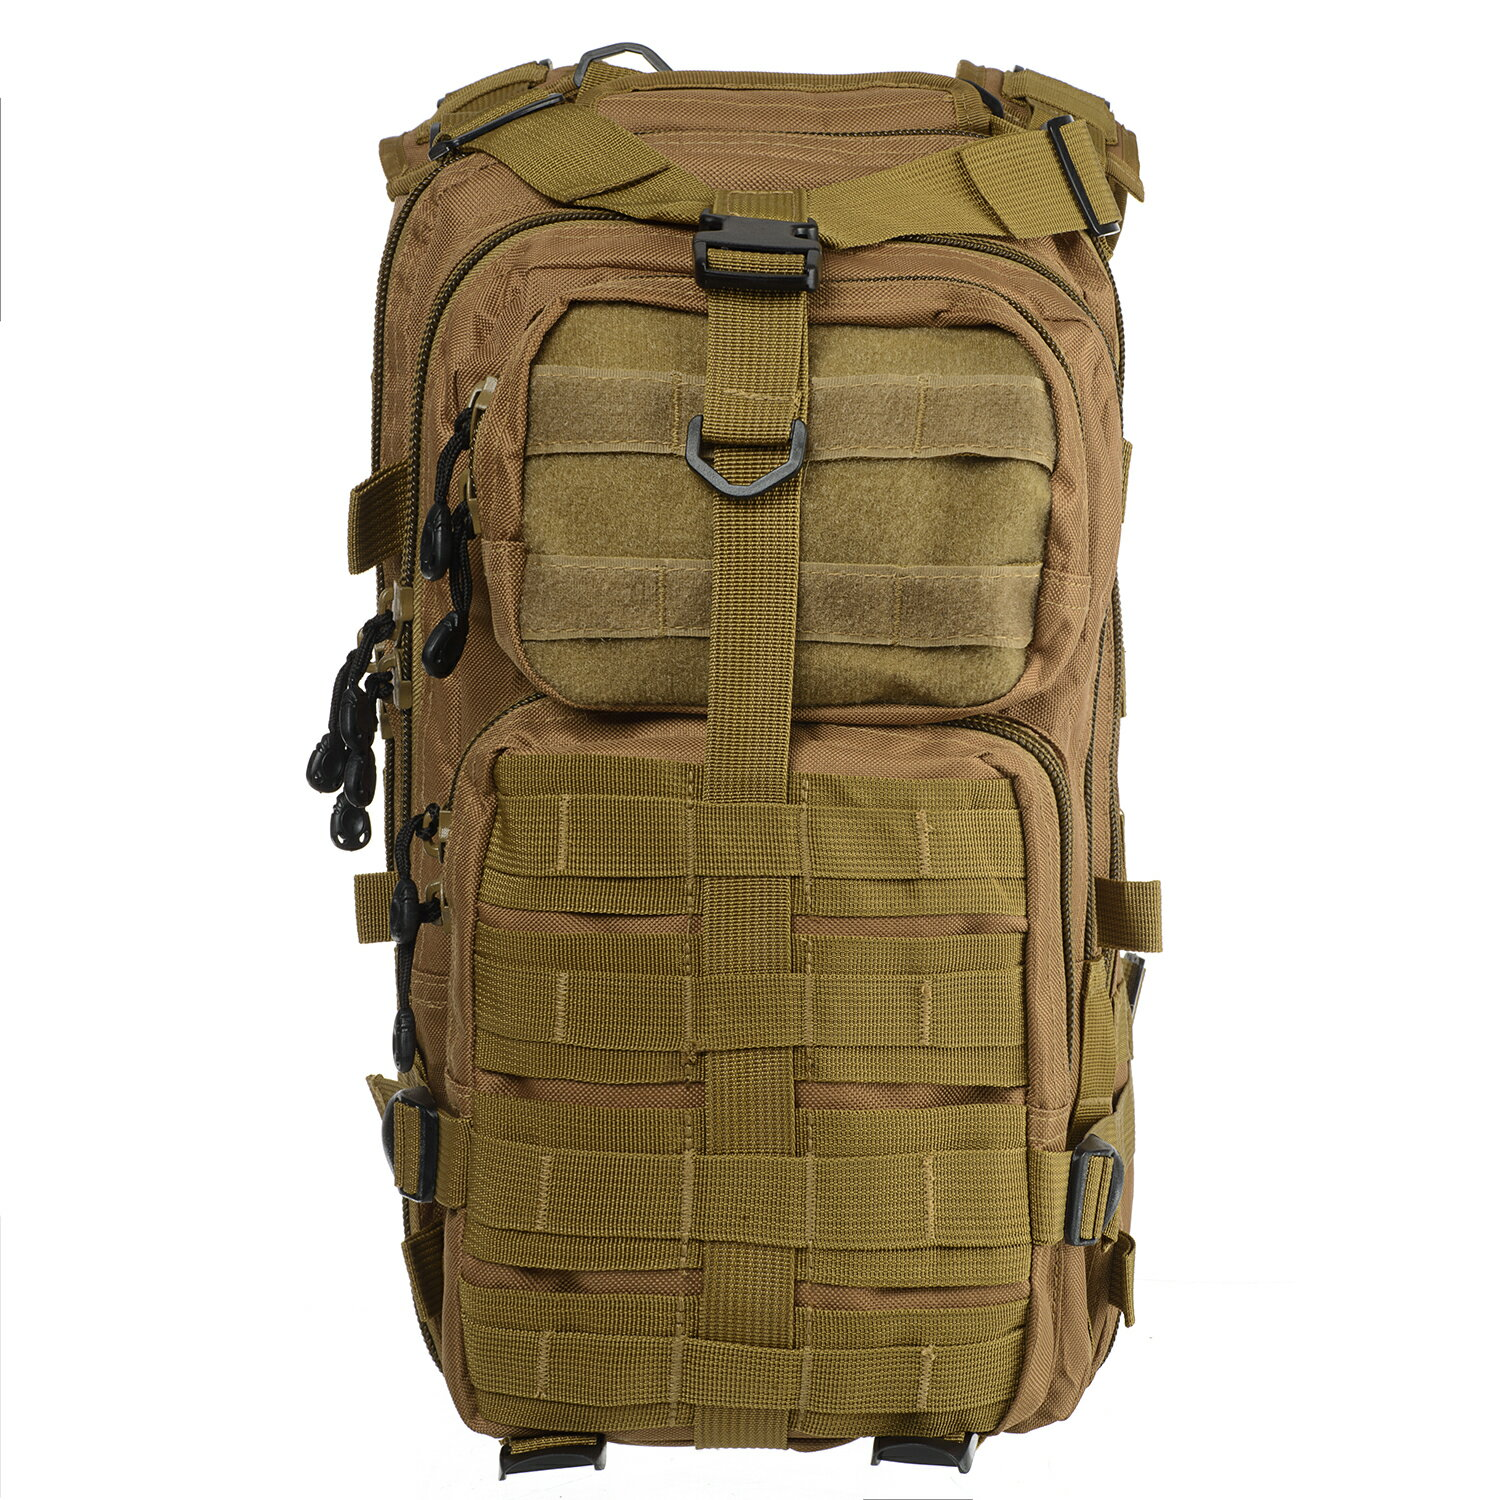 Military Tactical Large Army 3 Day Assault MOLLE Outdoor Backpack for Hiking - Coyote 2